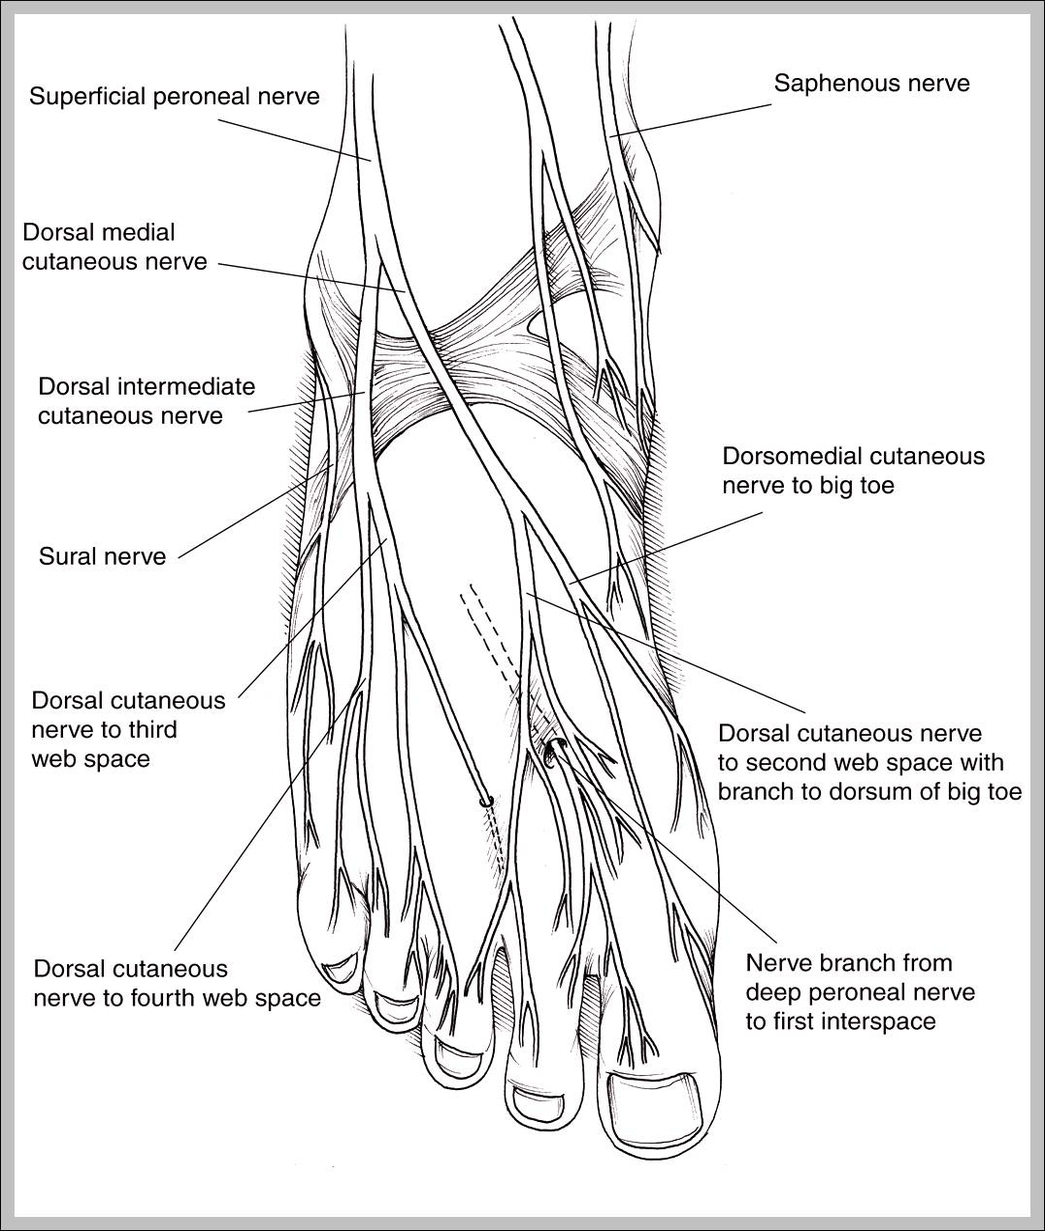 Nerves diagram graph diagram page 2 nerves of the feet diagram chart diagrams and charts with labels this diagram depicts nerves of the feet pooptronica